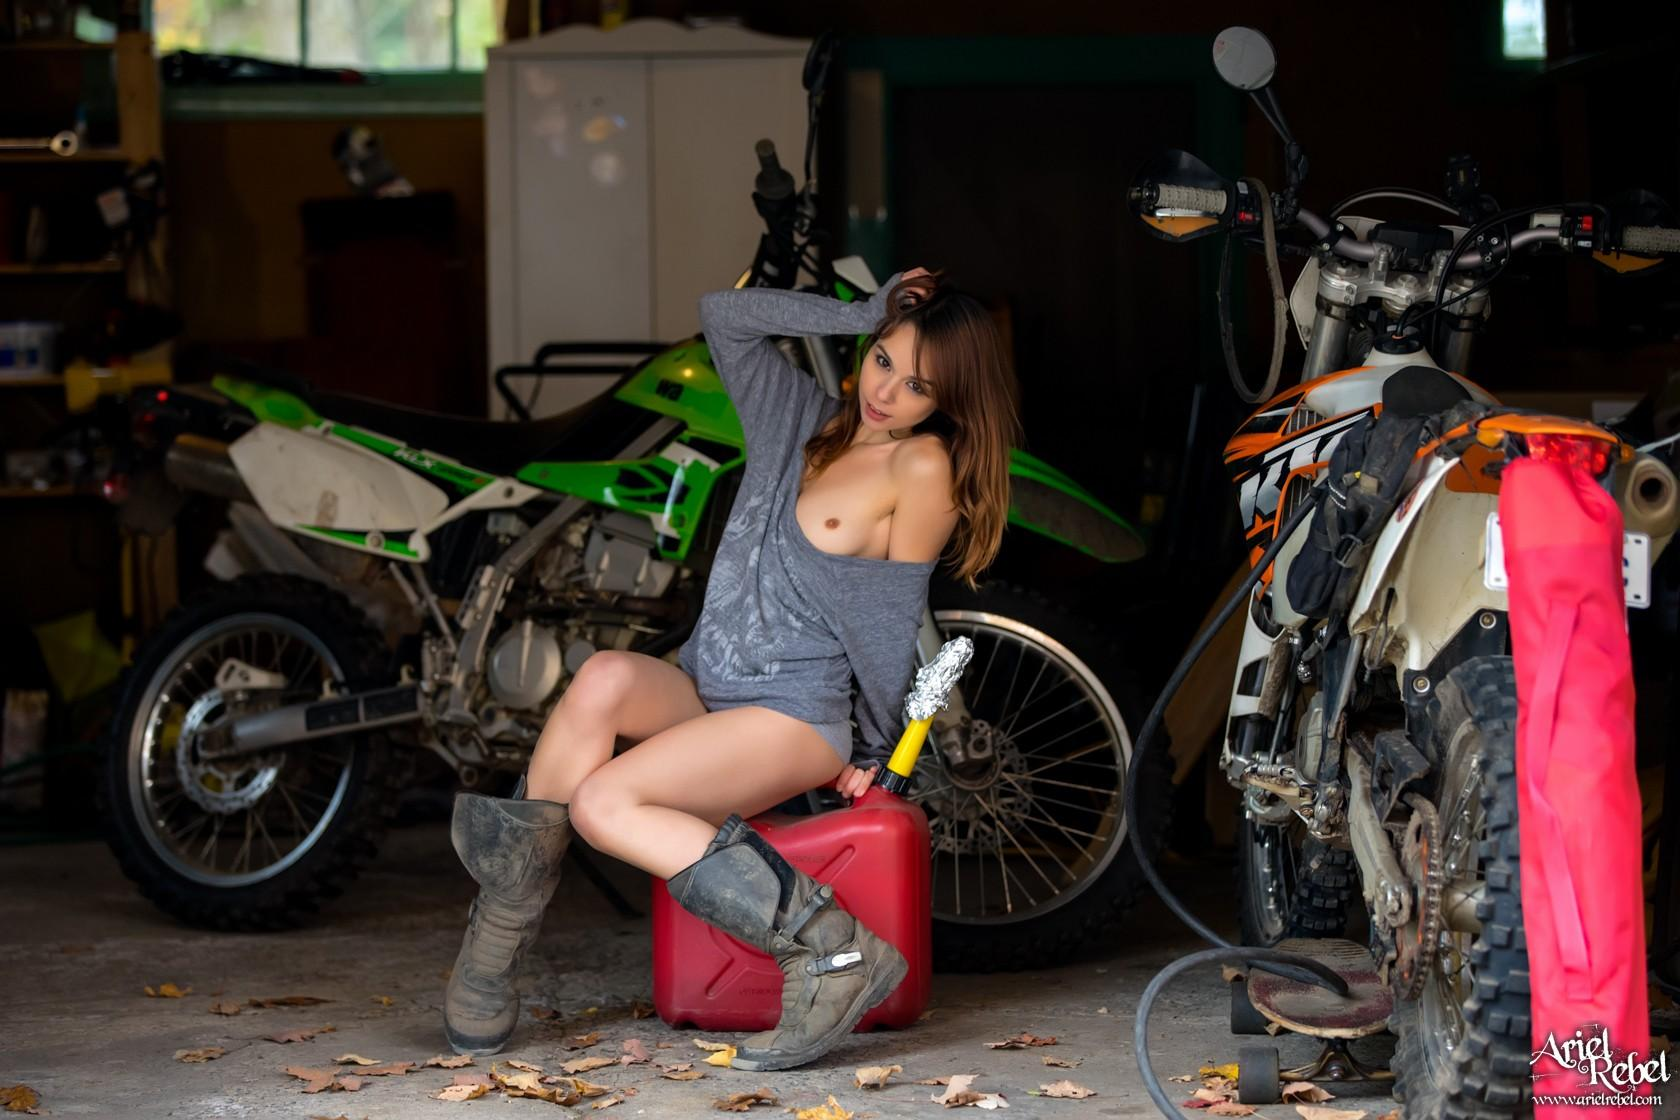 sexy ariel gets kinky while shes waiting for the motorcycle repair man #8